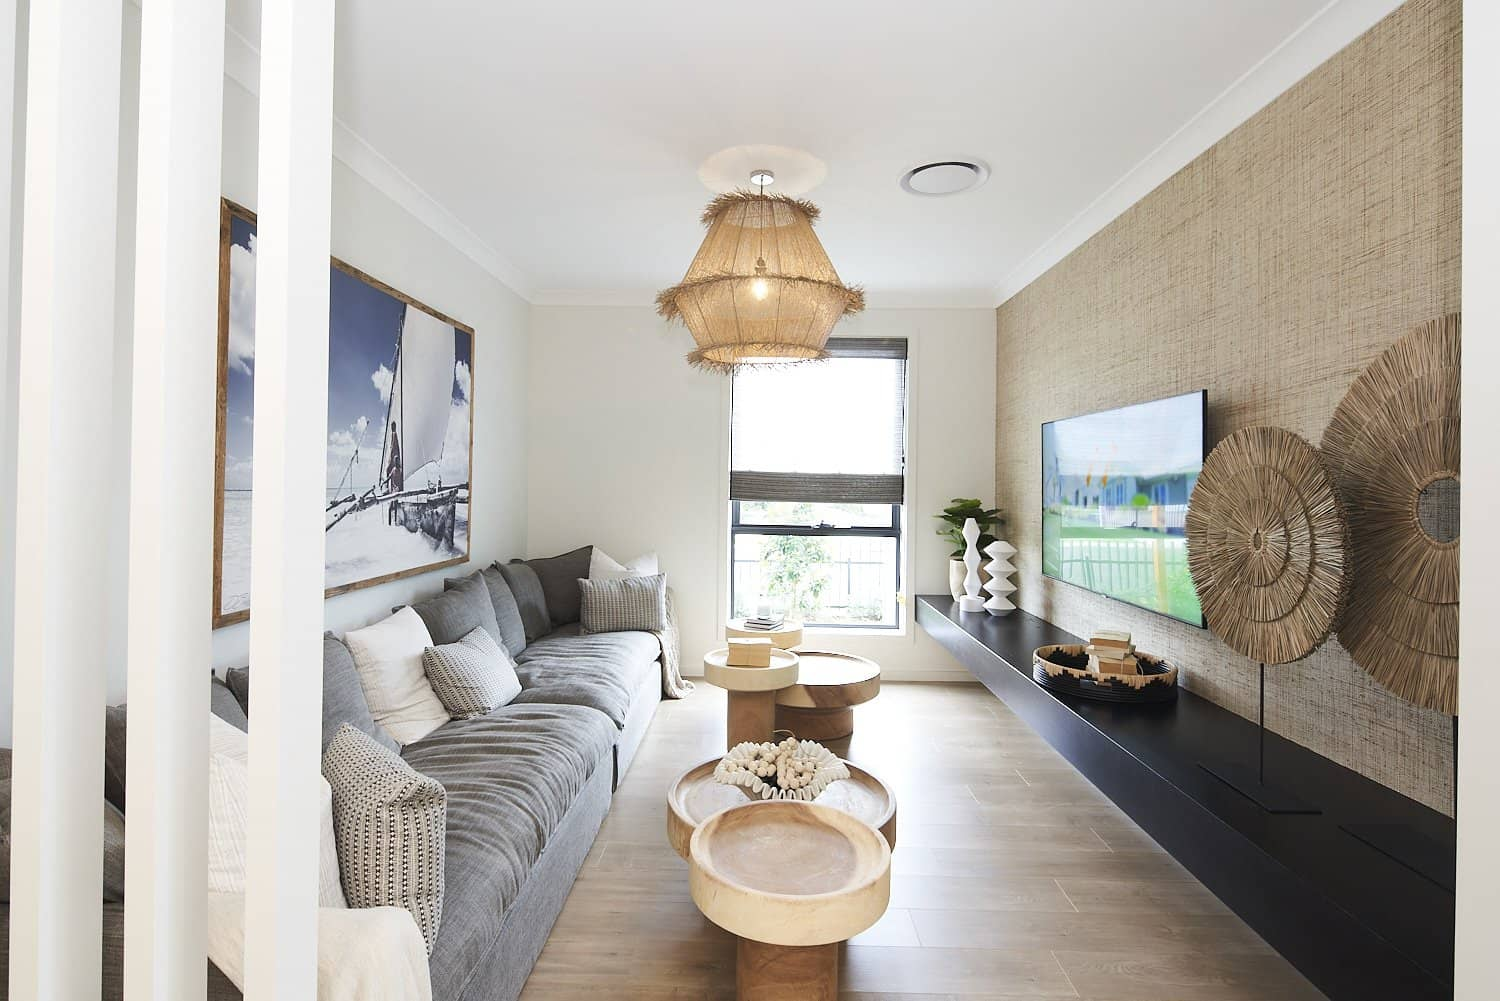 Find the perfect sanctuary at Masterton Homes